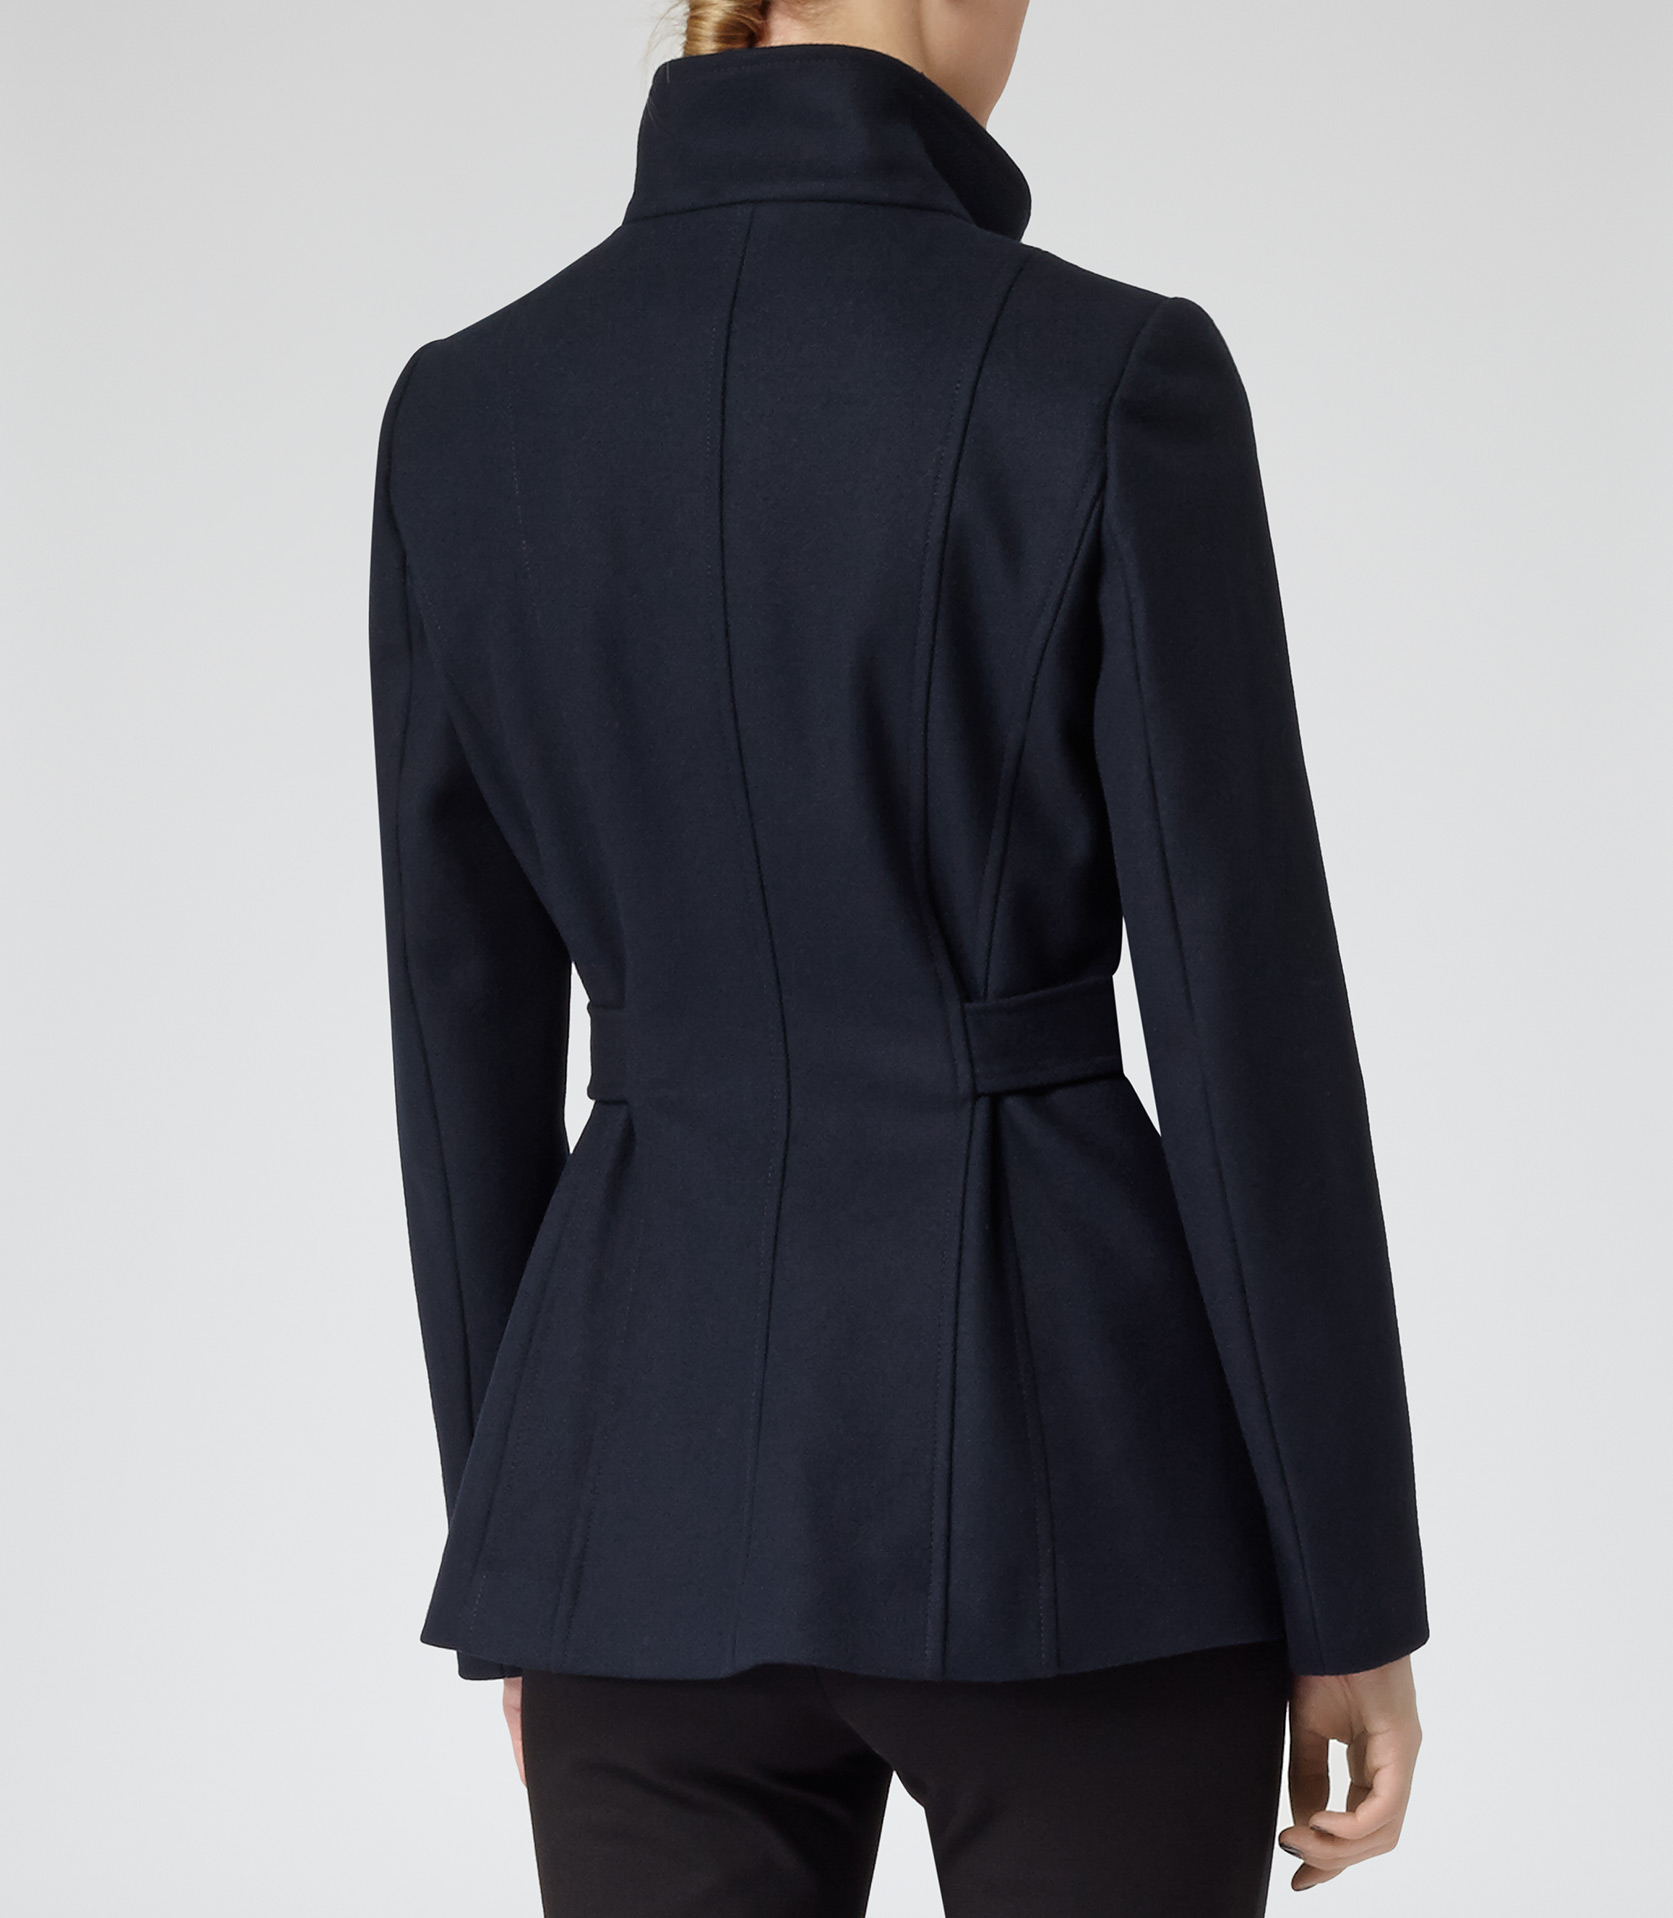 Hermitage Lux Navy Belted Wool Jacket - REISS